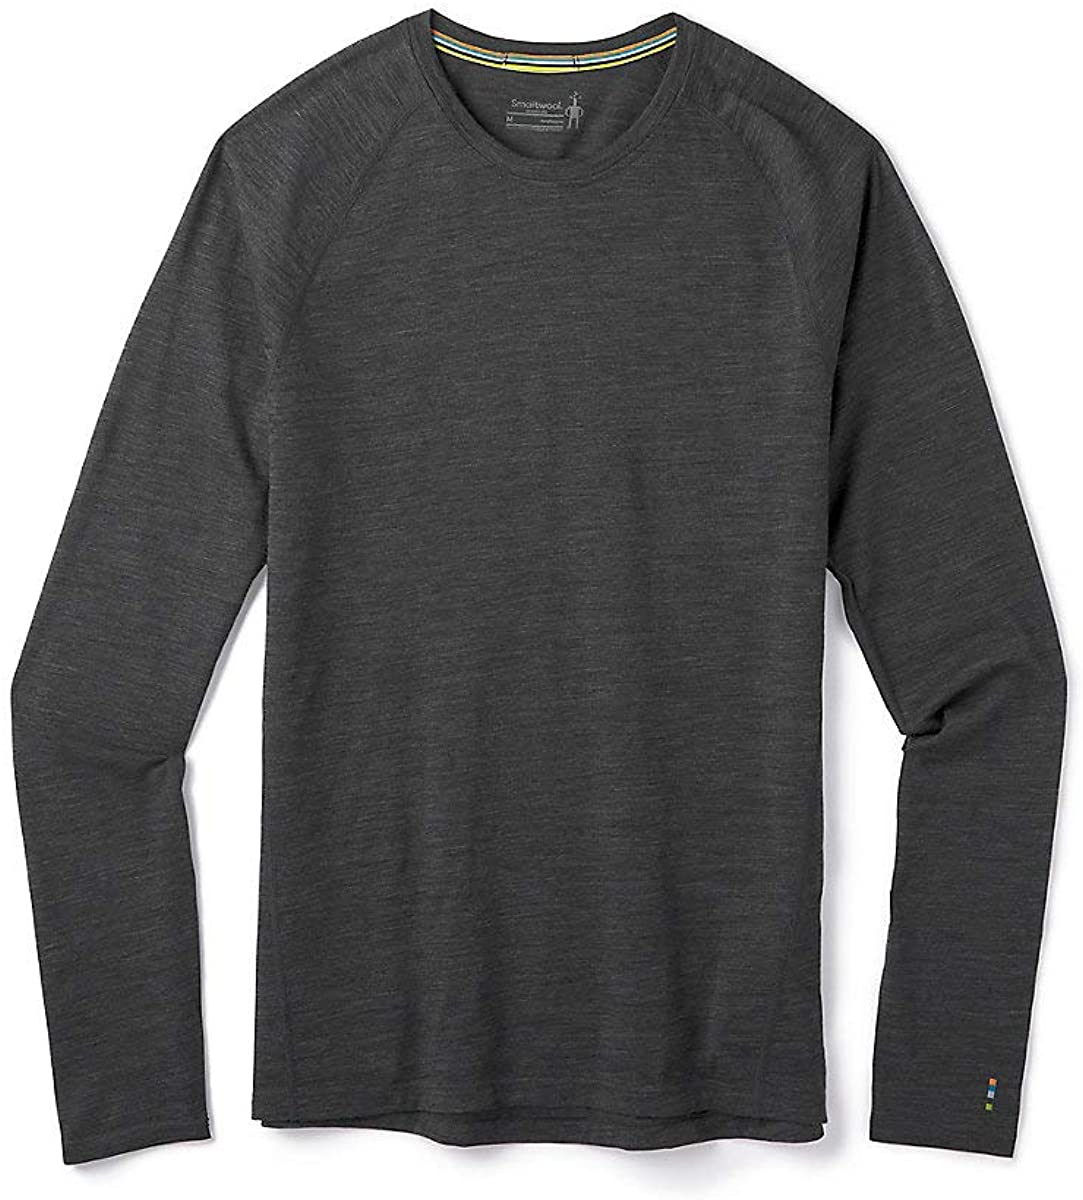 Men's Smartwool Merino 150 Base Layer Long Sleeve in Iron Heather view from the front